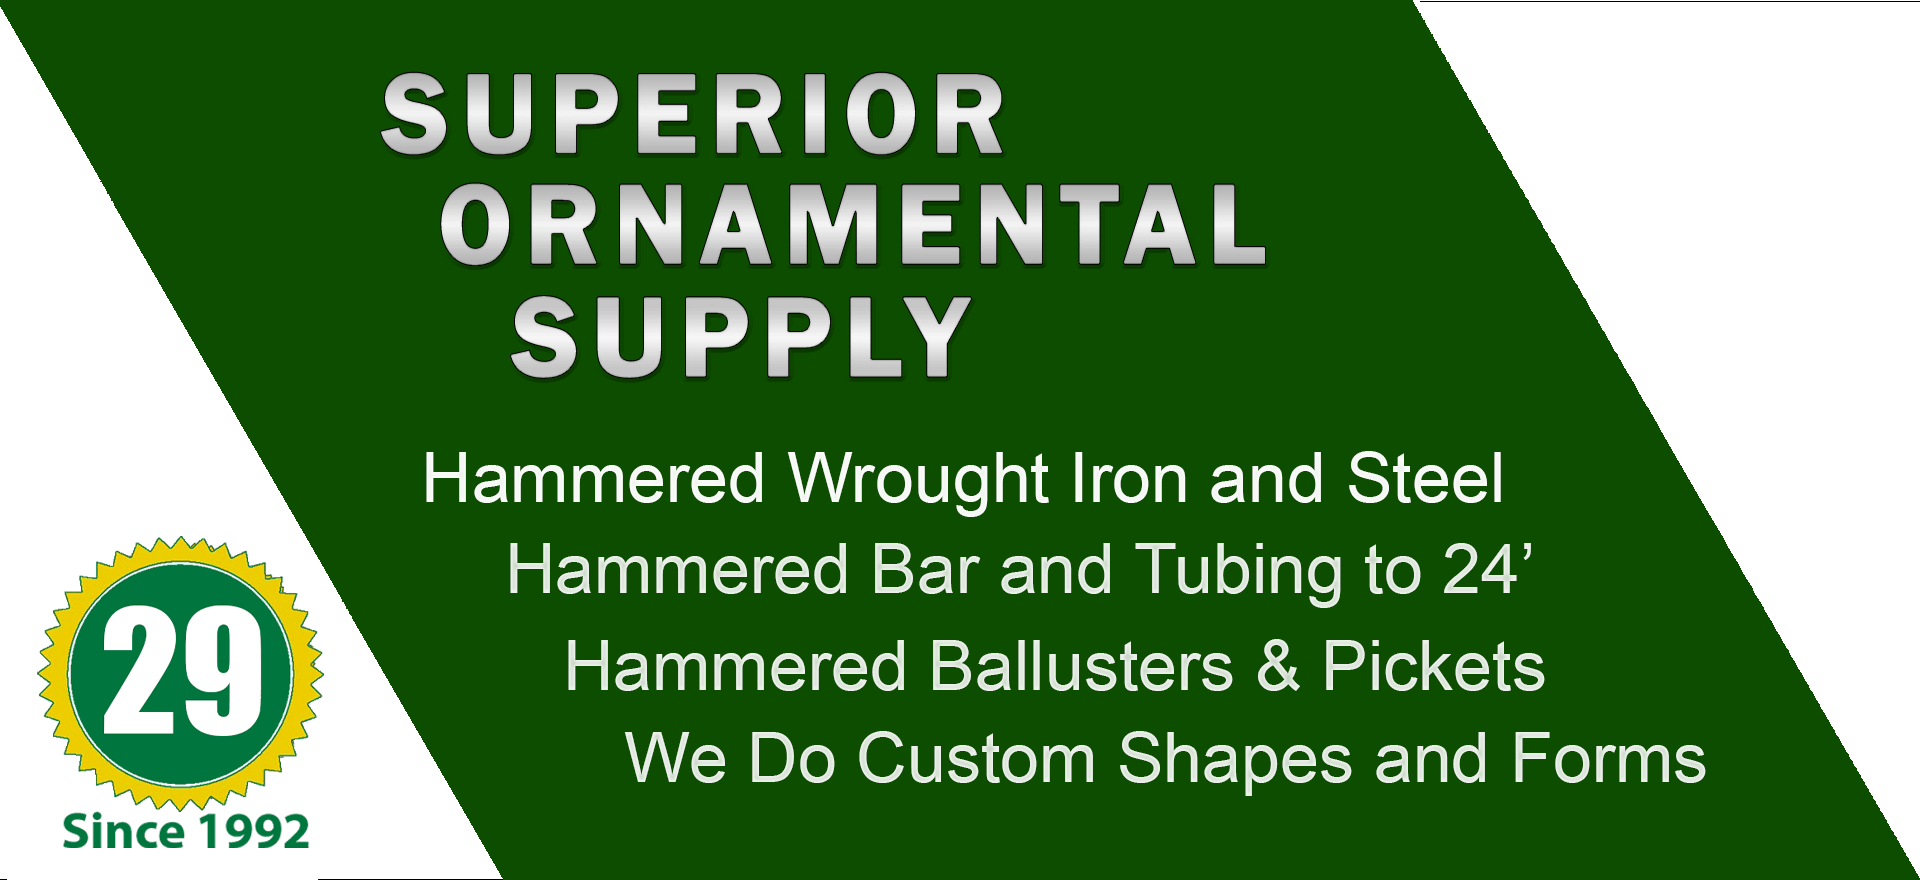 Hammered Bar and Tubing. Flat Bar, Round Solid, Square Solid, Rectangular Tube, Square Tube, Hot Forged Embossed Bar Stock. Wide variety and Excellent Quality from Superior Ornamental Supply.